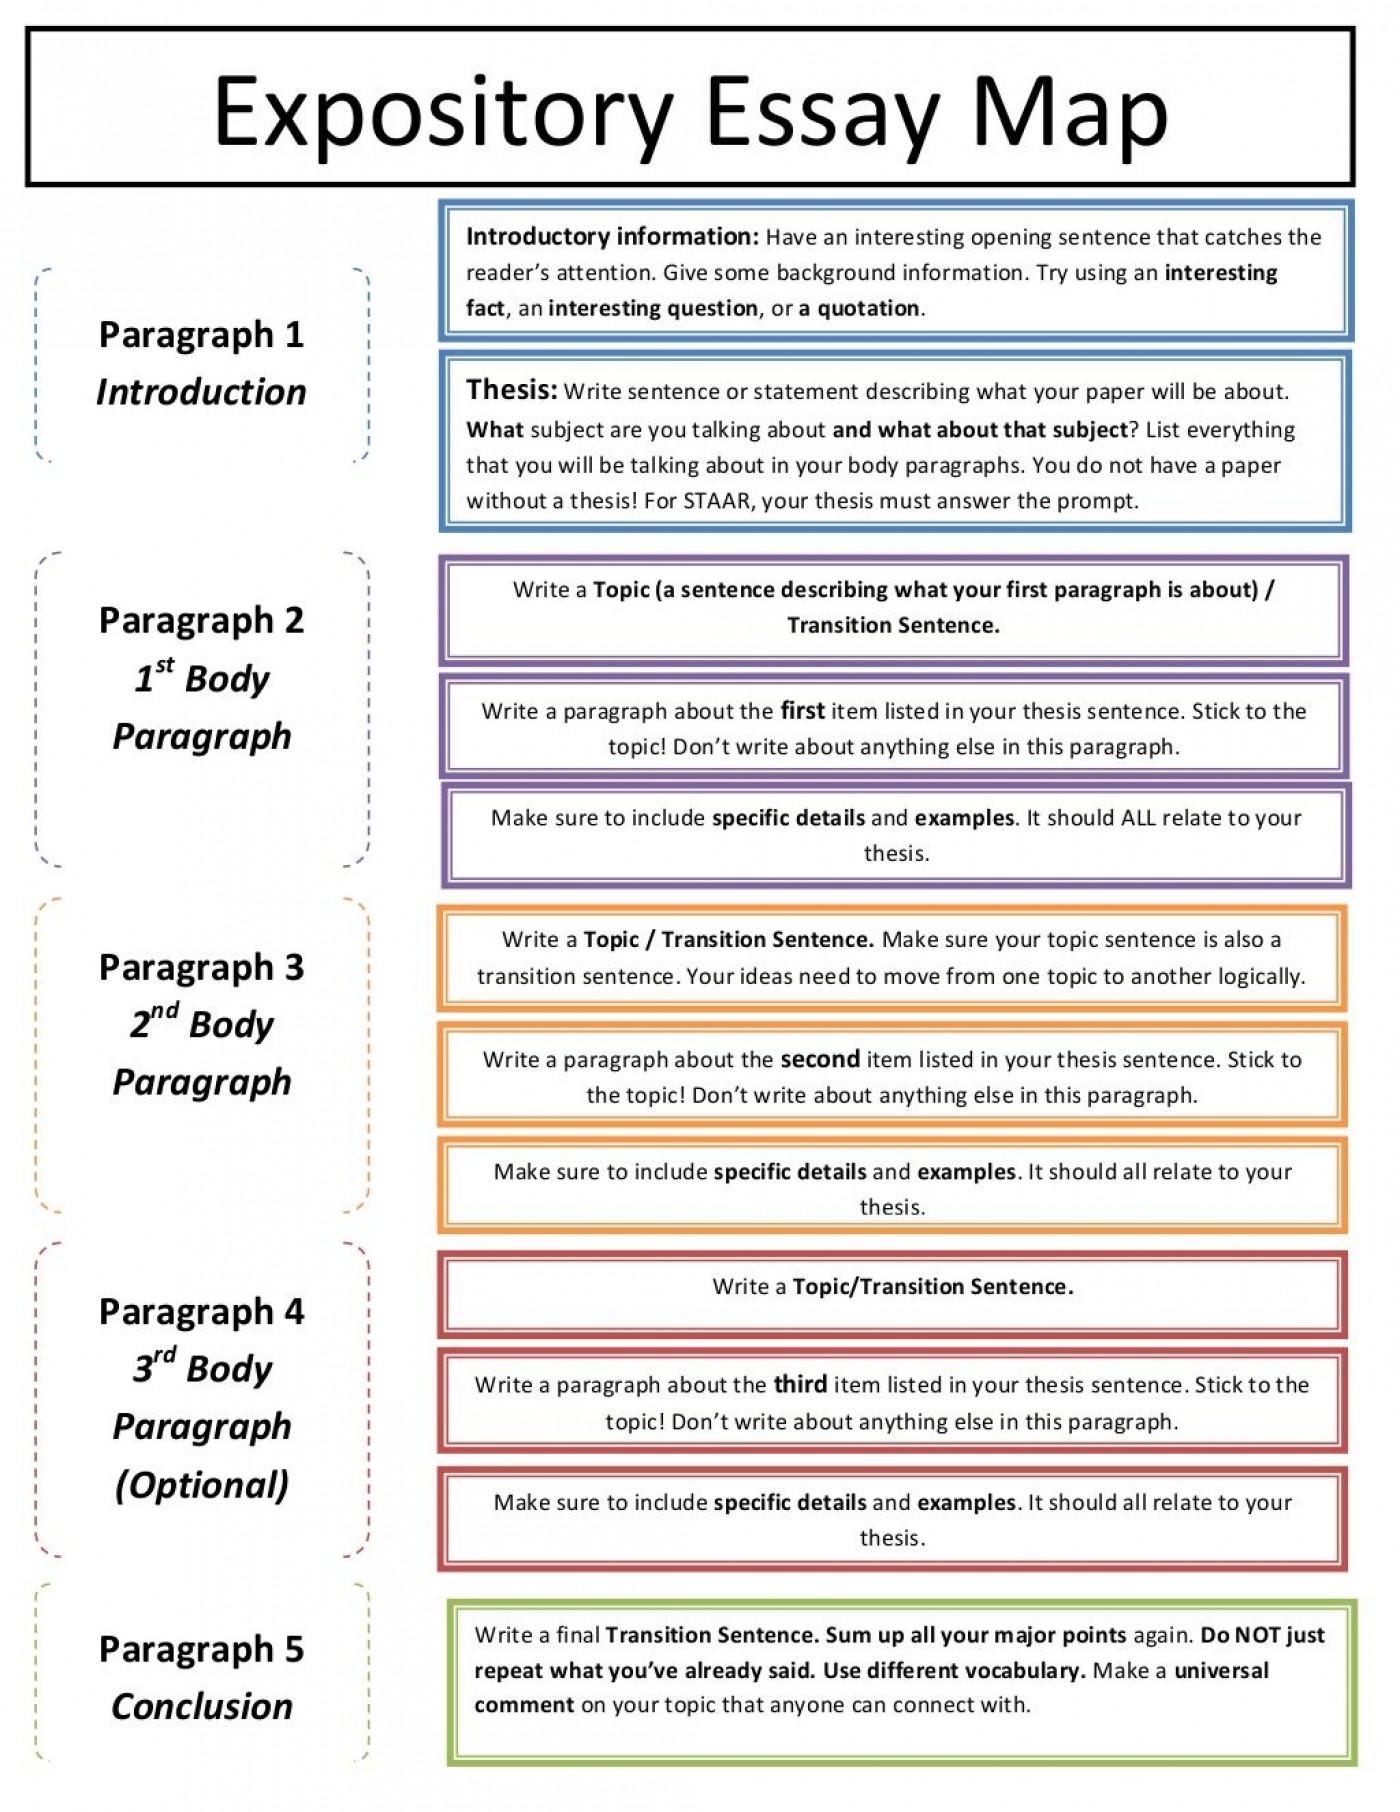 015 Essay Example Formidable Map Pictorial Pdf Outline 1400